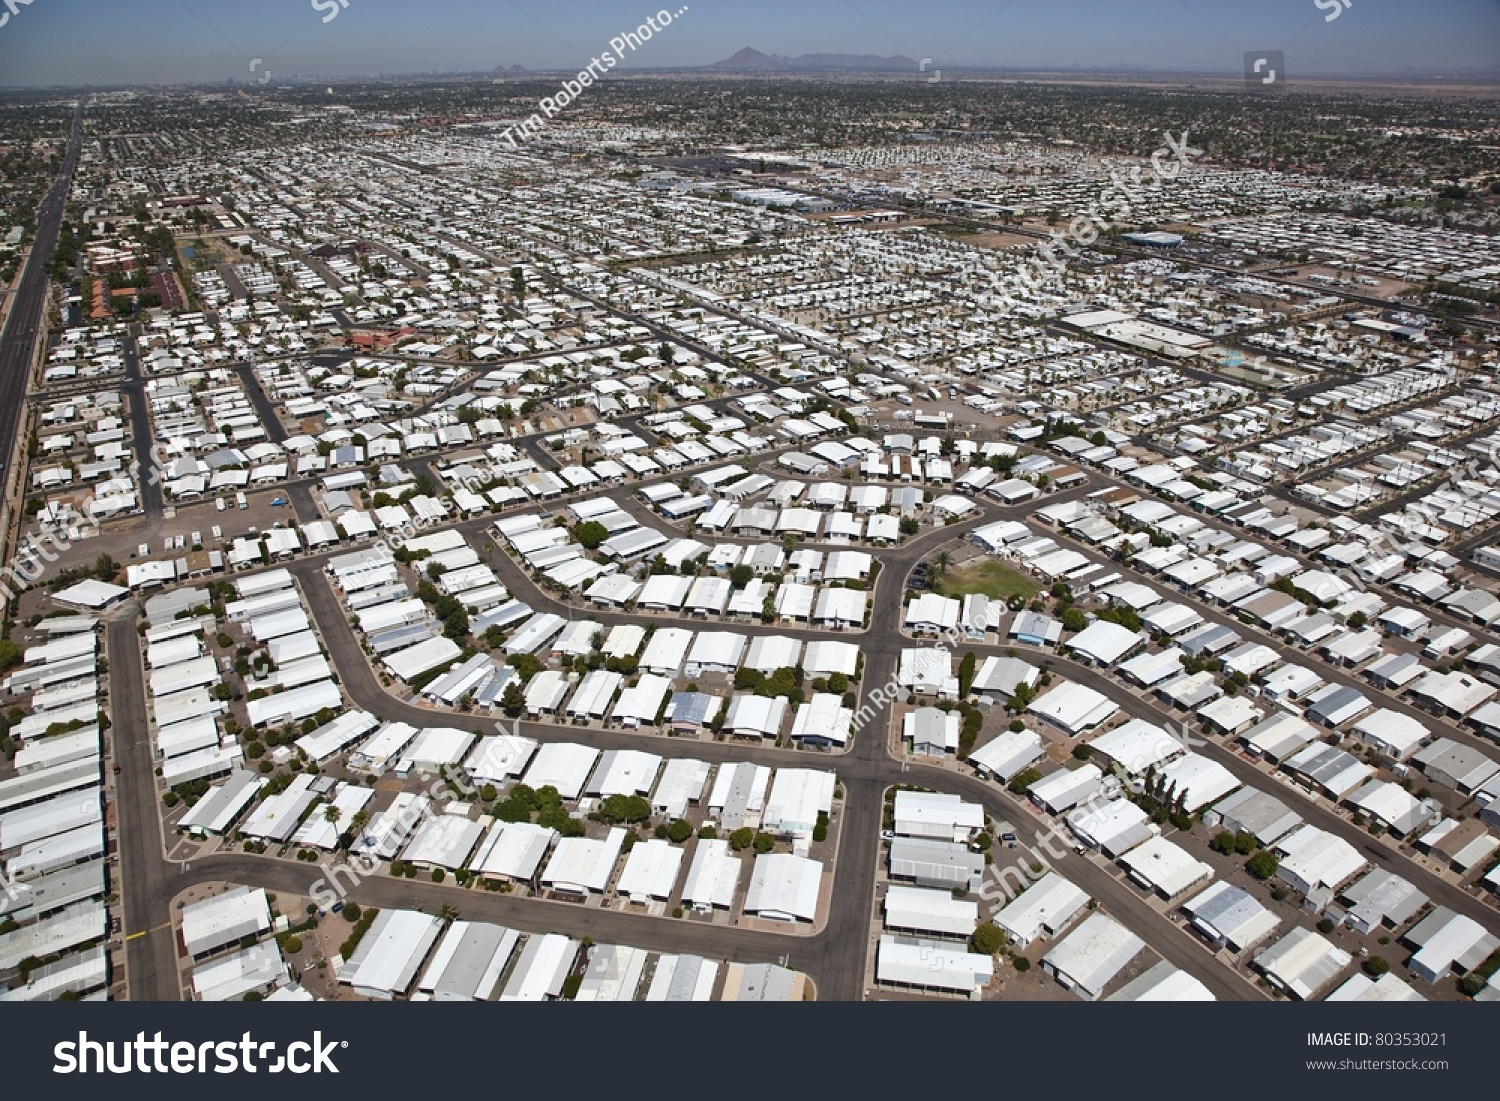 mobile home parks in havelock nc, office park aerial, airport aerial, mobile home 55 plus communities, on mobile home park aerial view florida